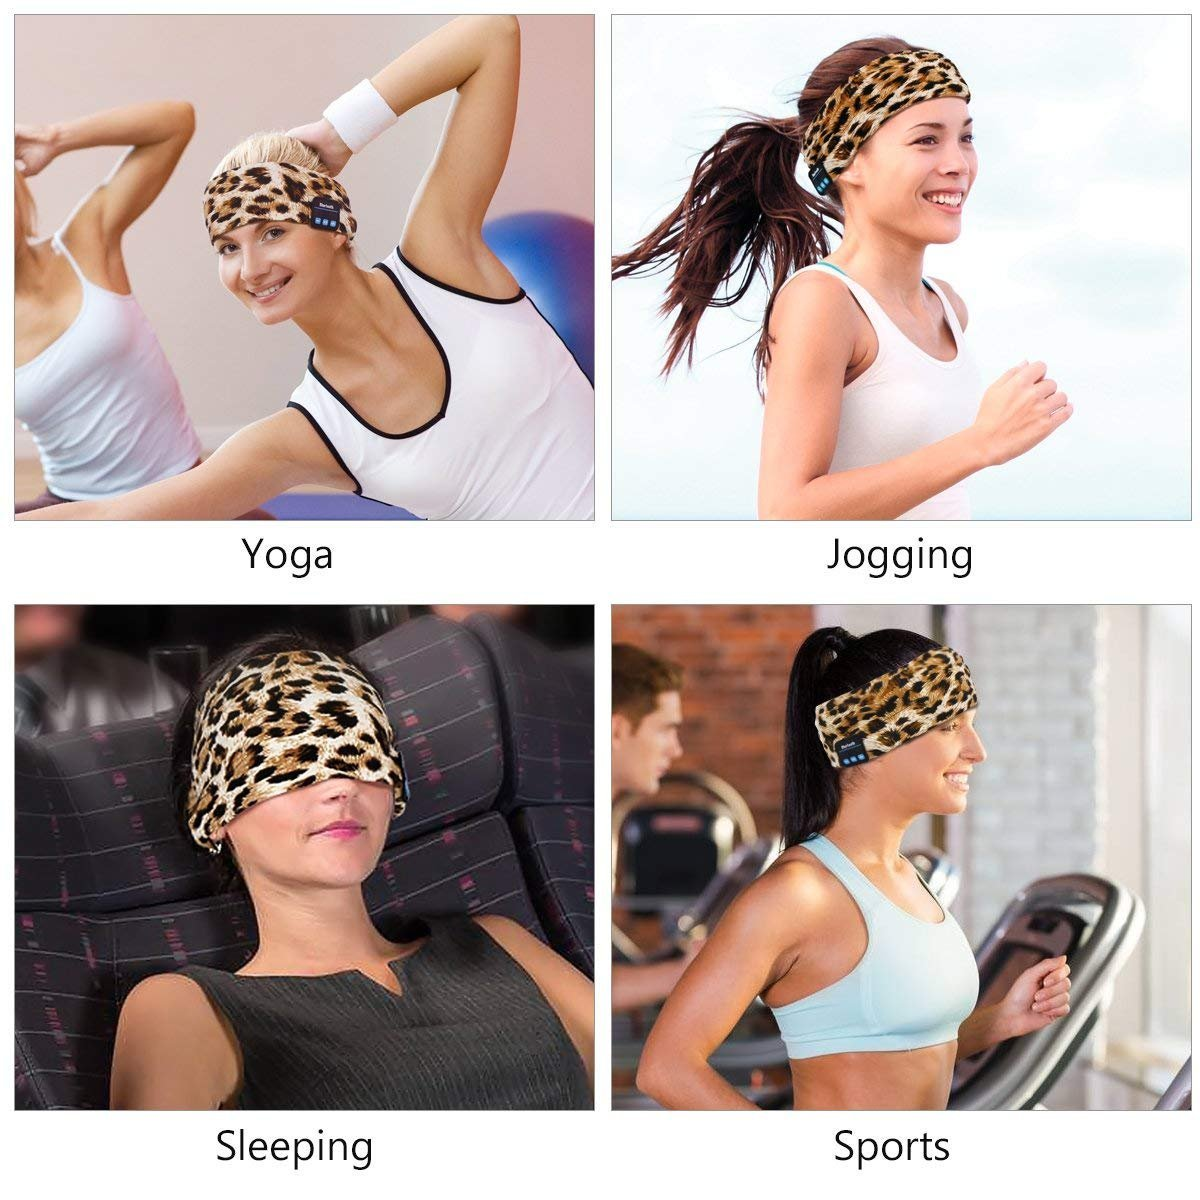 WU-MINGLU Wireless Bluetooth Headband, Wireless Sports headband Sleep Headphones Headset Music Running Headband with Mic Built-in Stereo Speakers for Outdoor Sports Yoga, Leopard -Brown